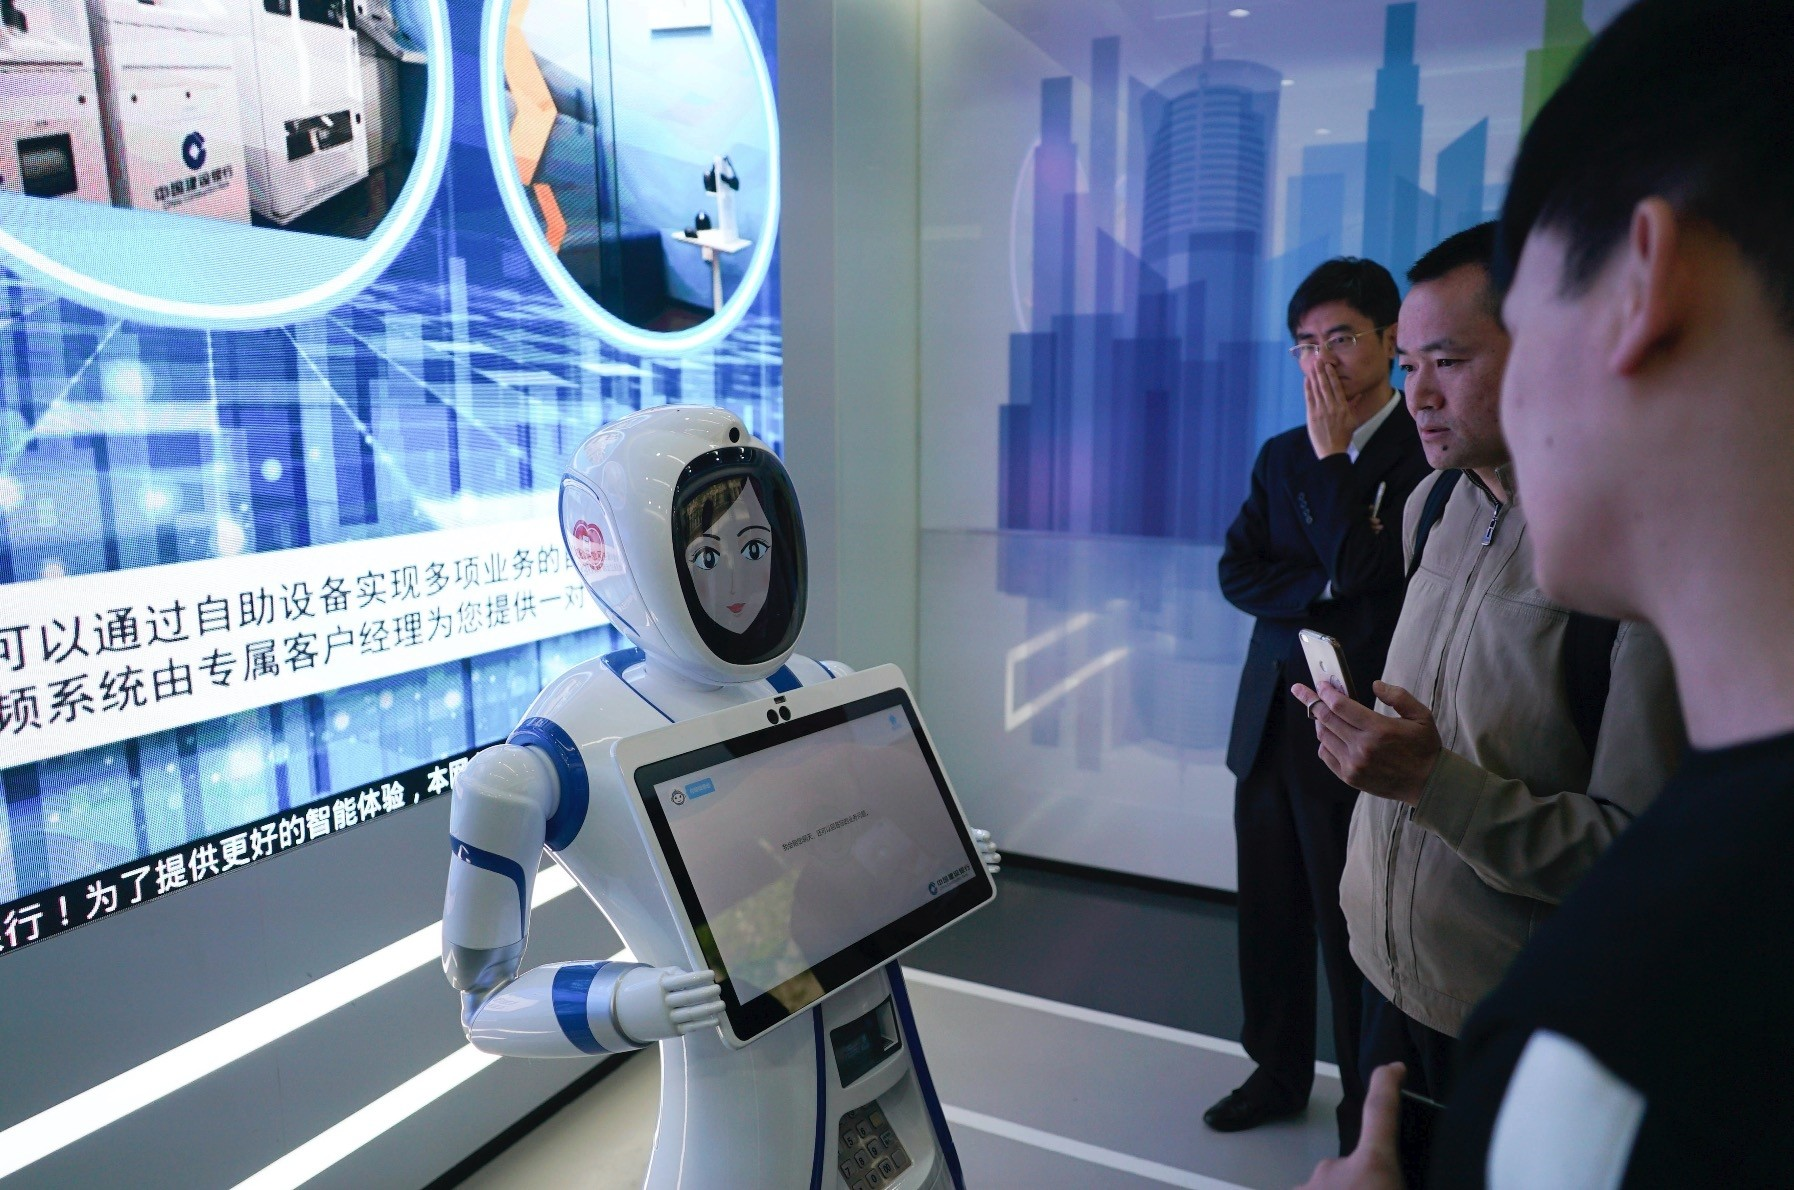 Bank customers speak with a robot at an automated branch in Shanghai.